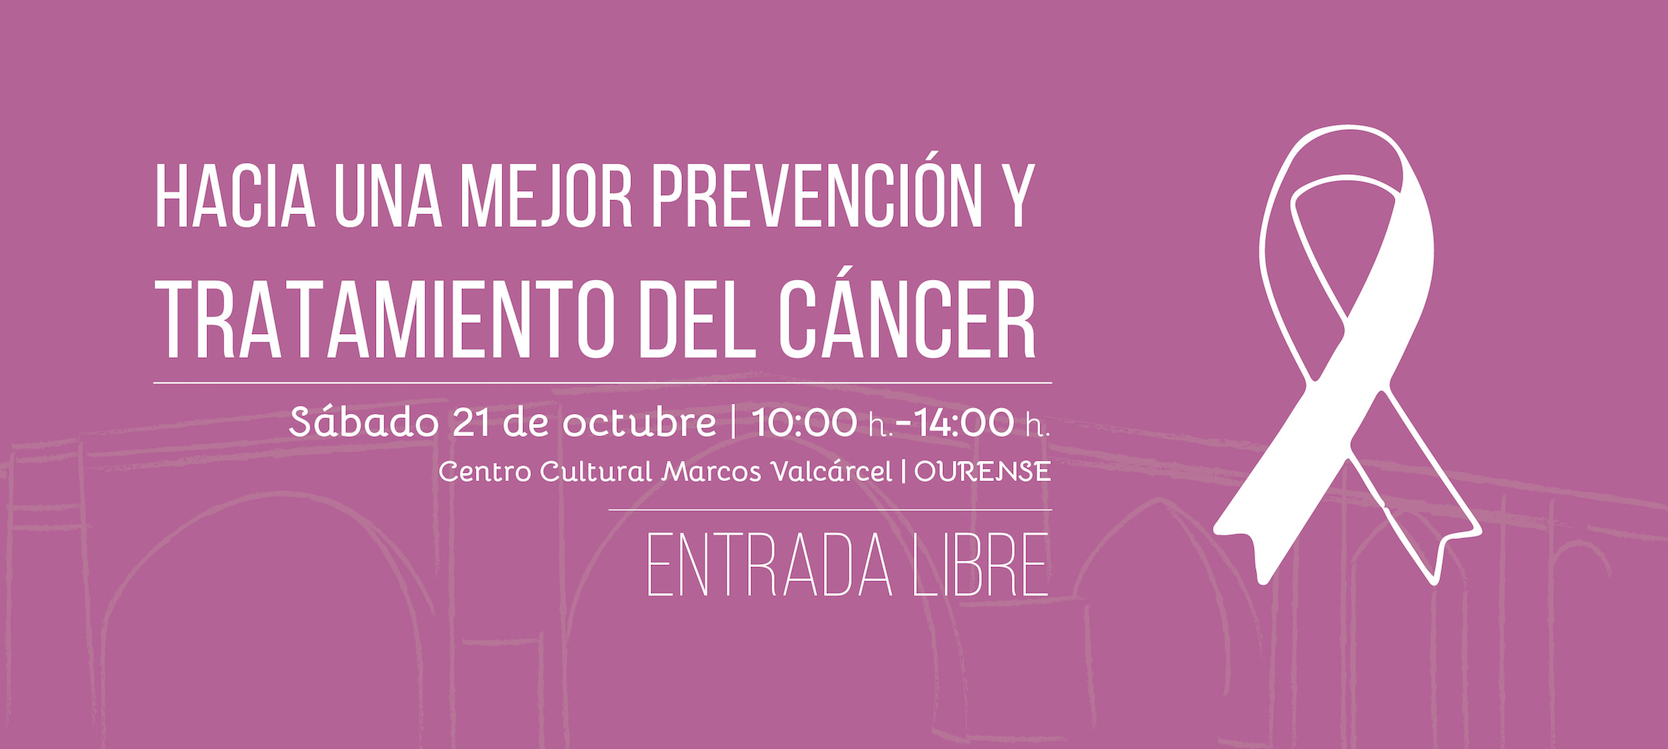 jornada-prevencion-y-tratamiento-del-cancer